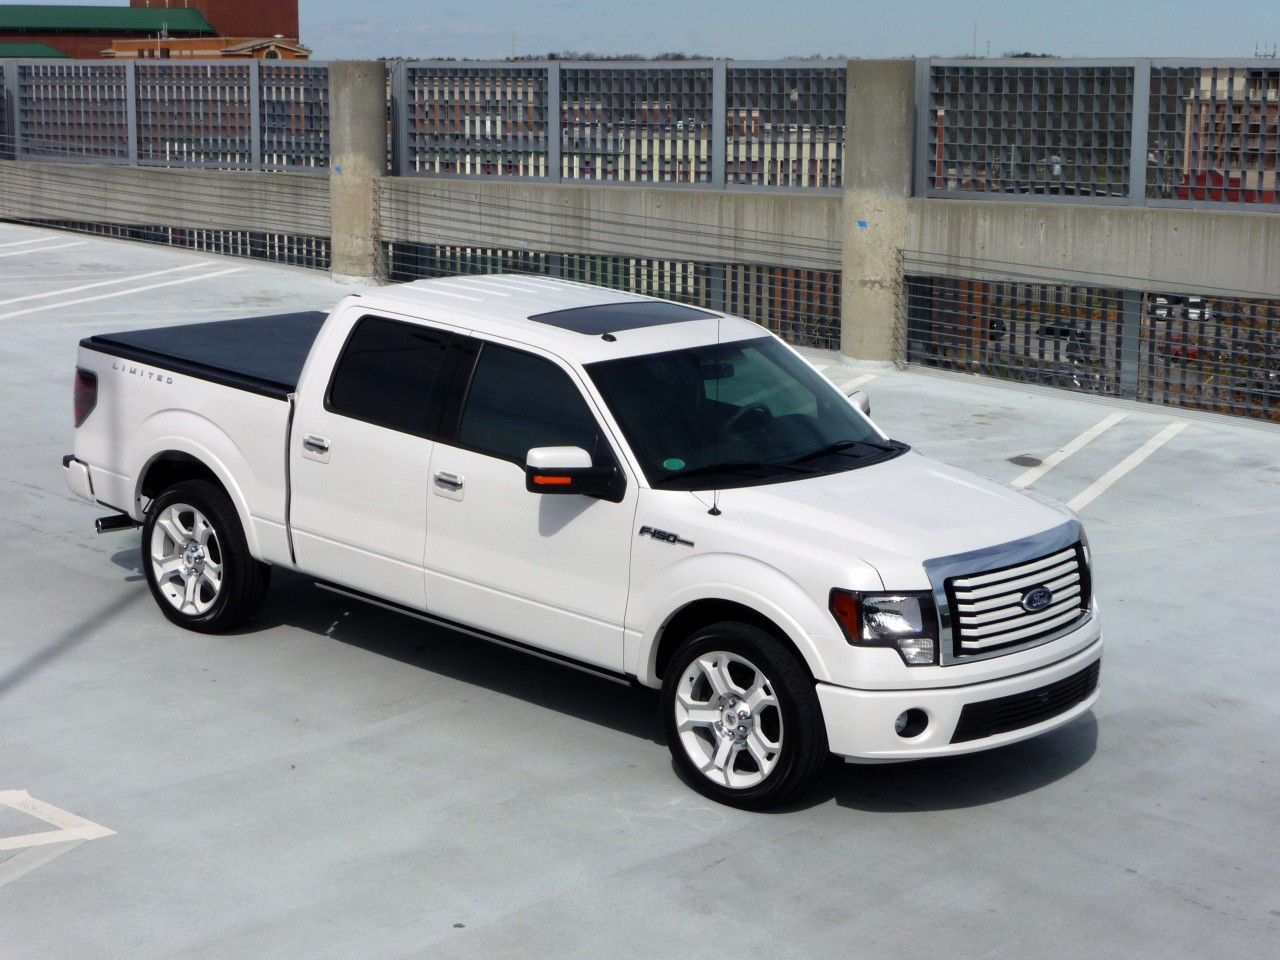 2011 2014 f 150 trim levels what 39 s right for me page 2 ford truck enthusiasts forums. Black Bedroom Furniture Sets. Home Design Ideas